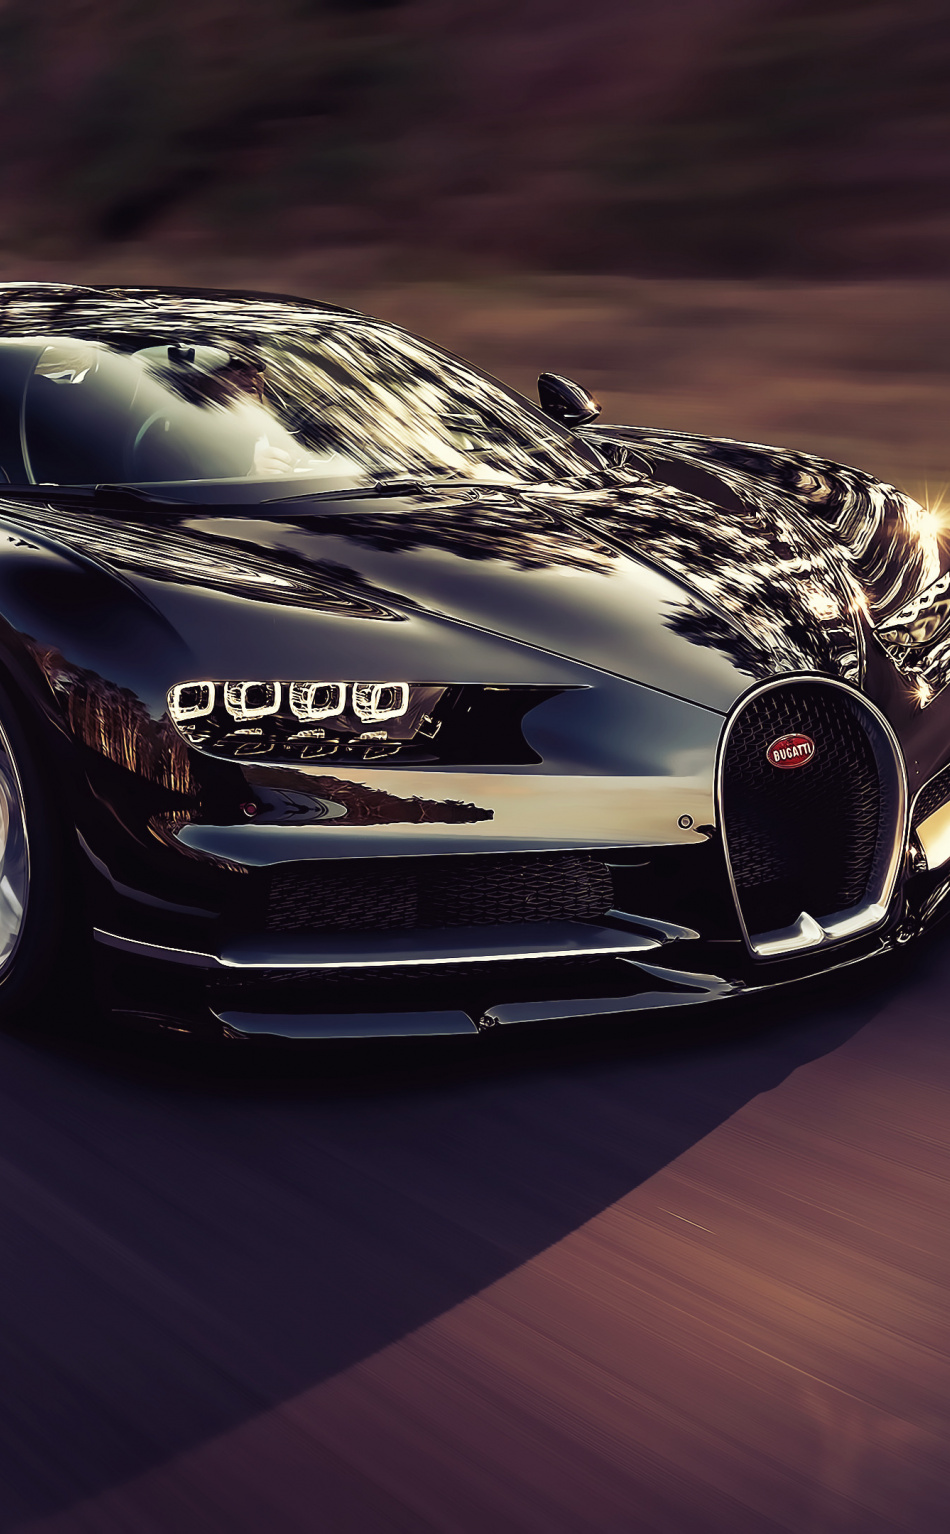 Luxury Car Bugatti Chiron On Road Wallpaper Bugatti Chiron